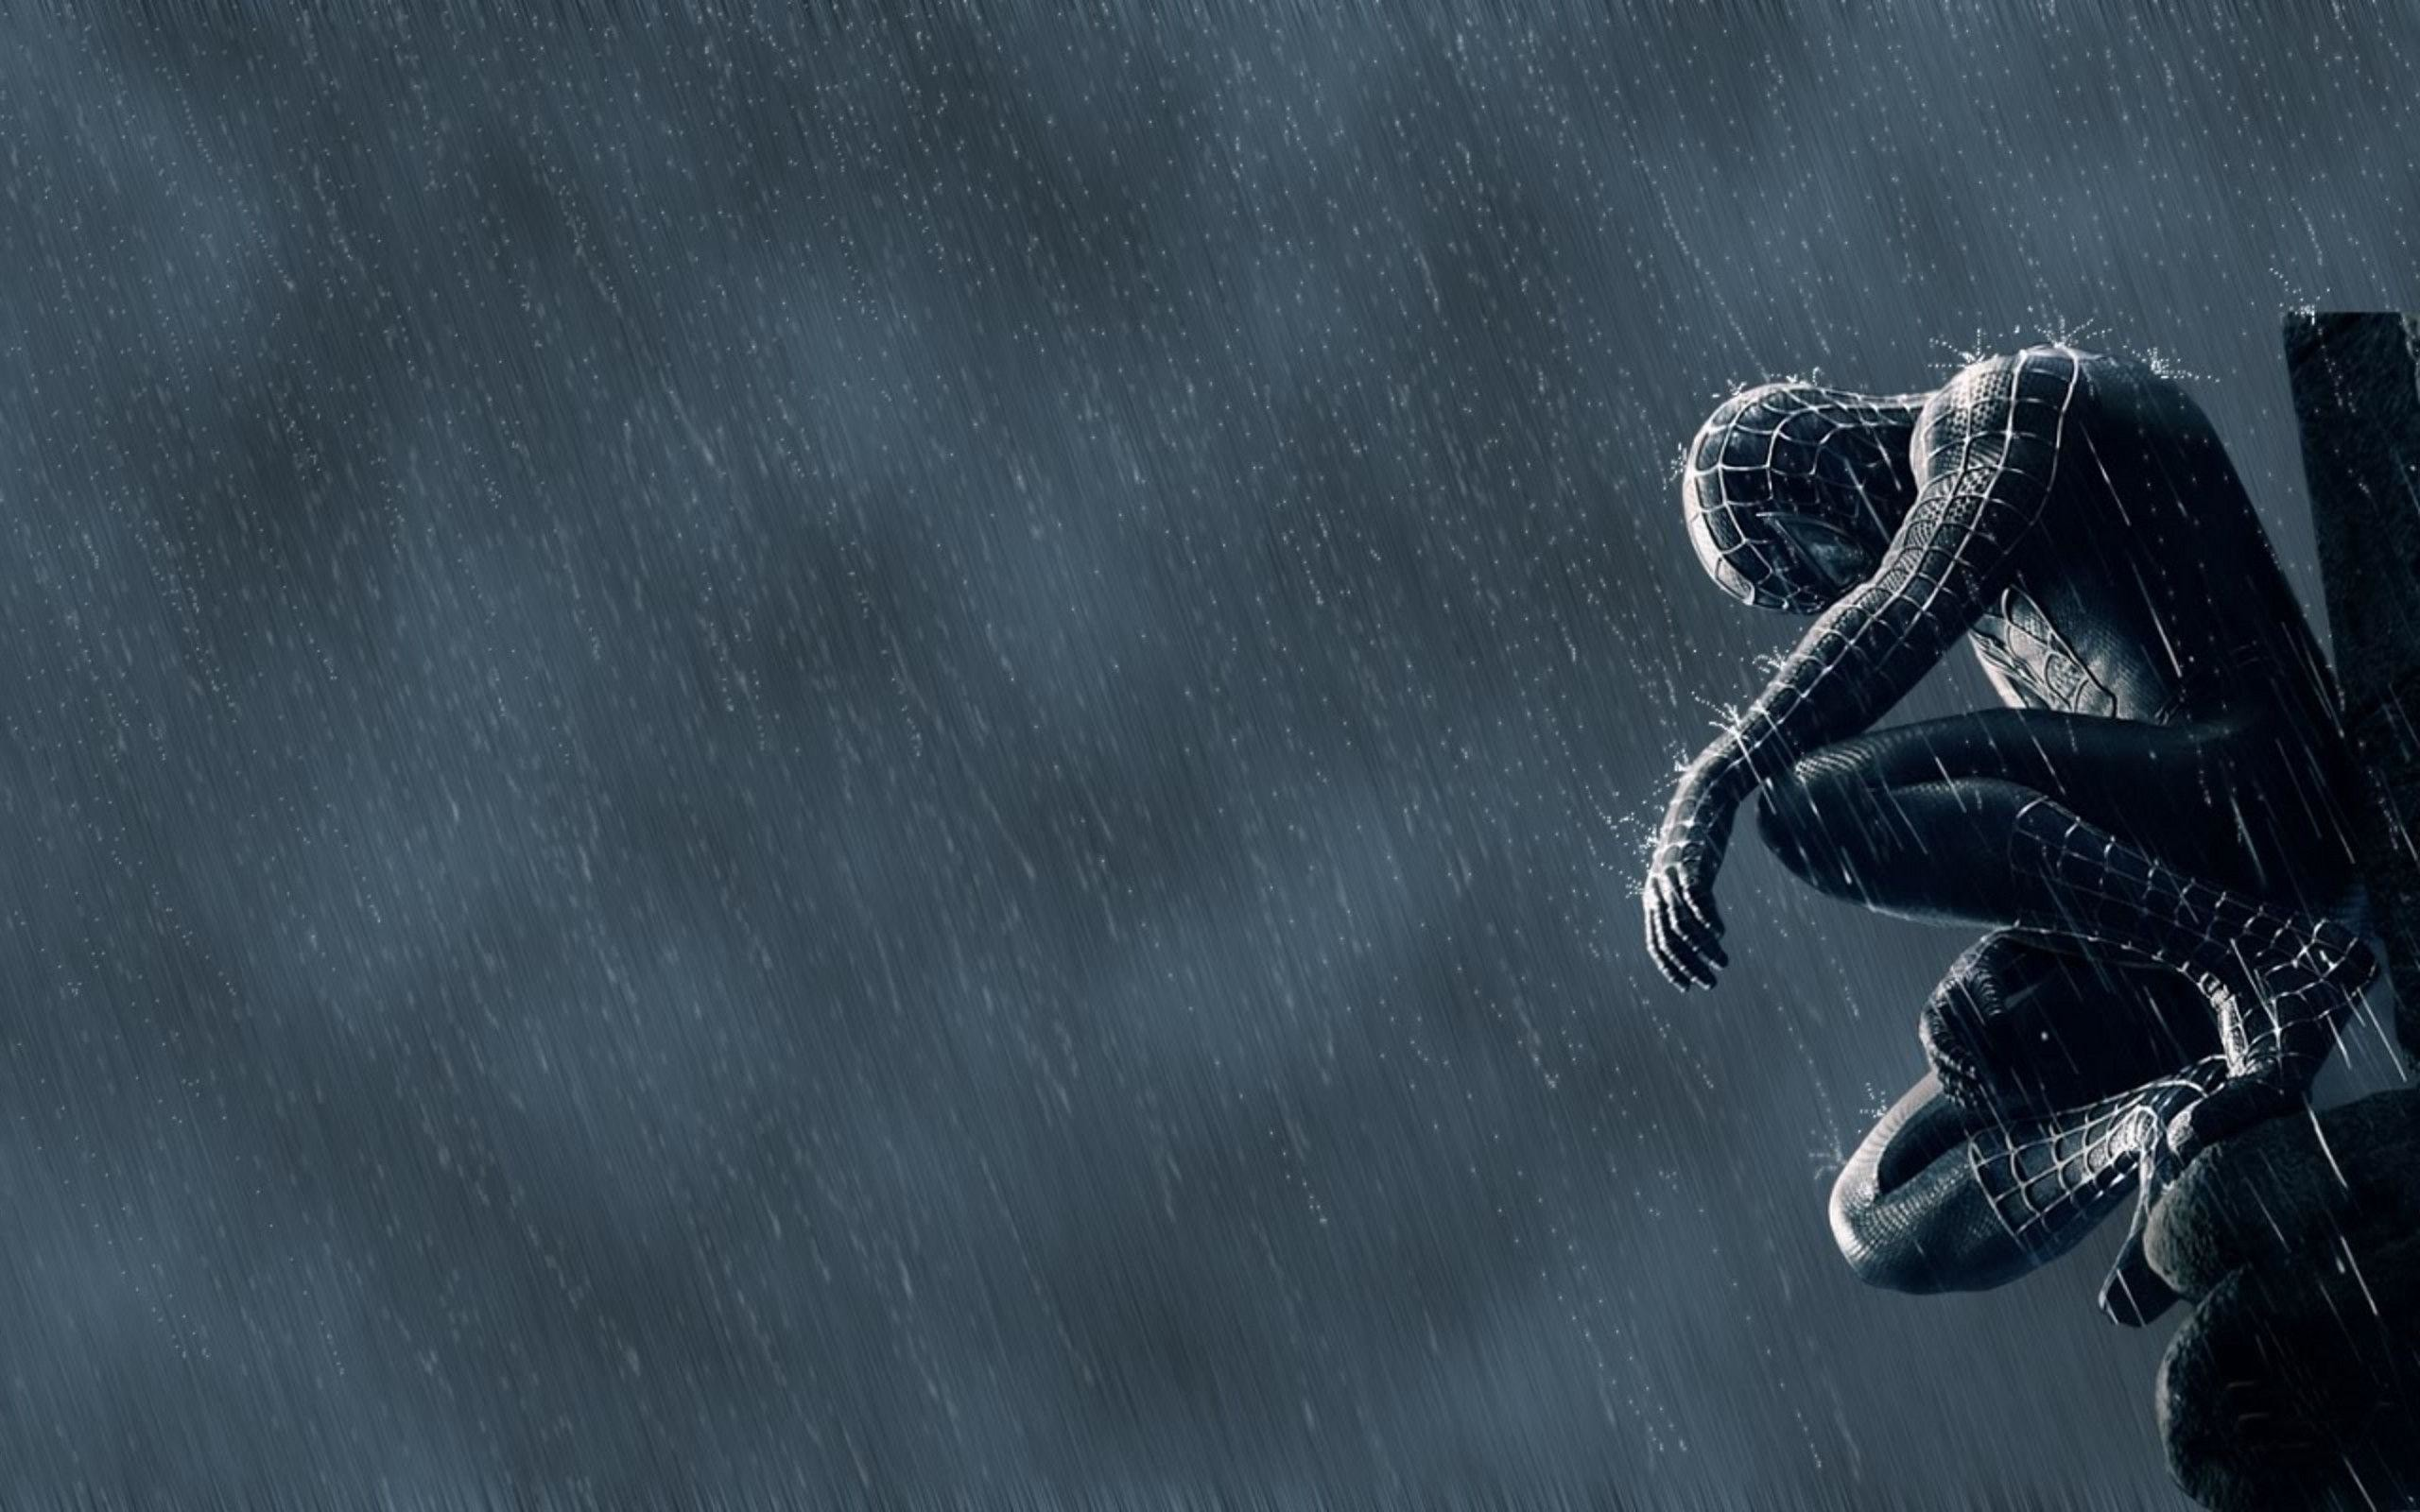 Spiderman 3 wallpaper wallpapertag - Black and white spiderman wallpaper ...